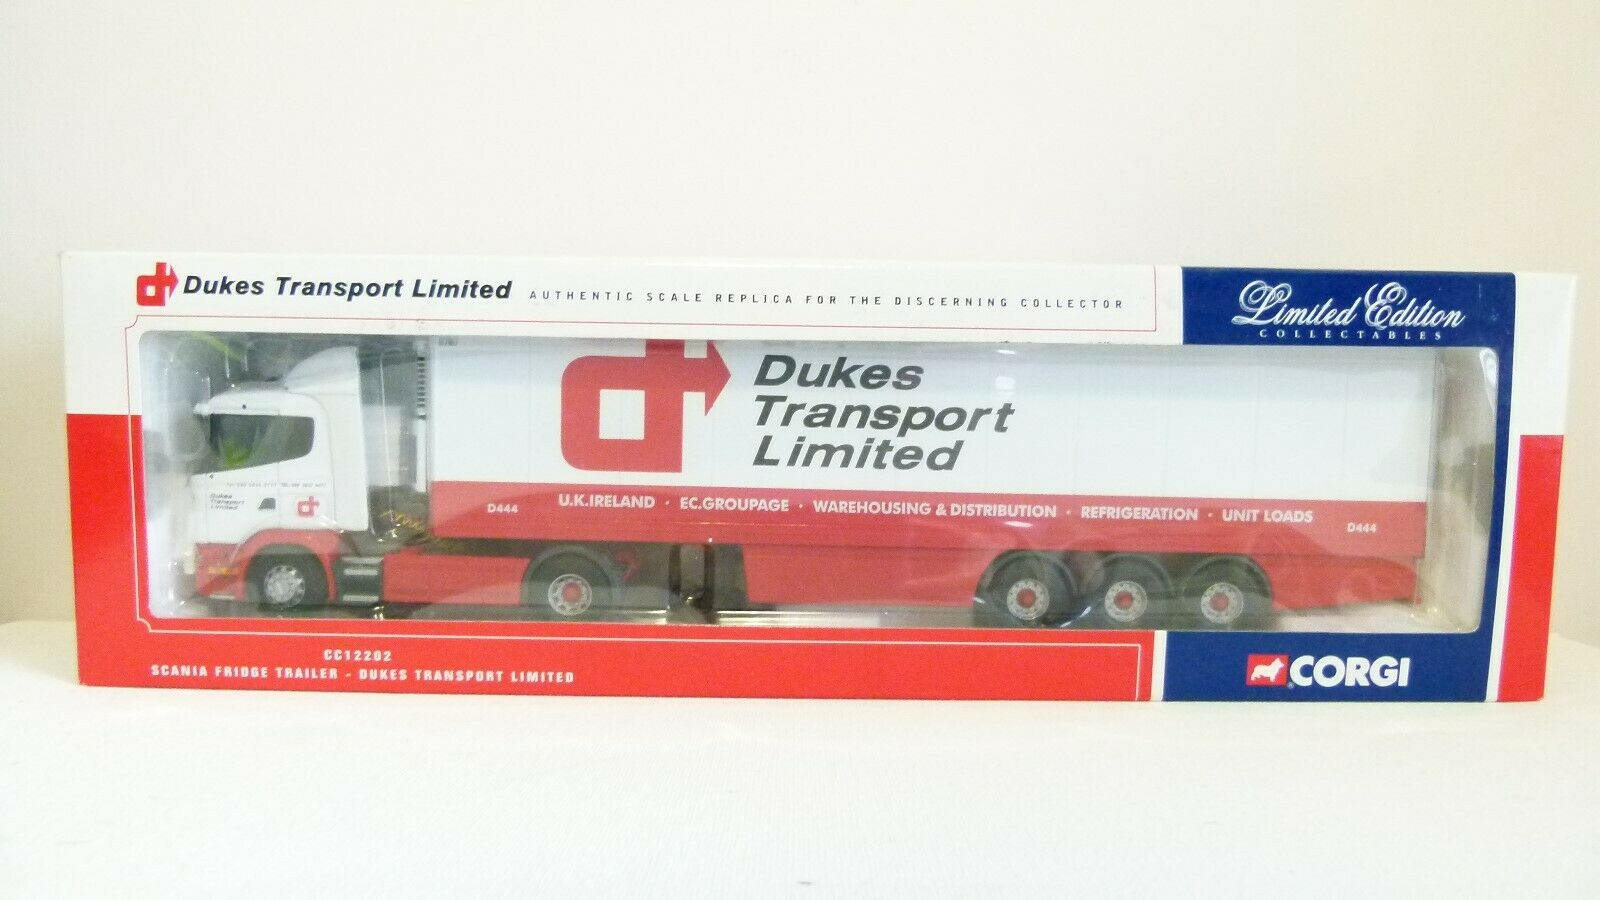 CORGI Limited Edition CC12202-Dukes Transport LIMITED SCANIA Frigo remorque